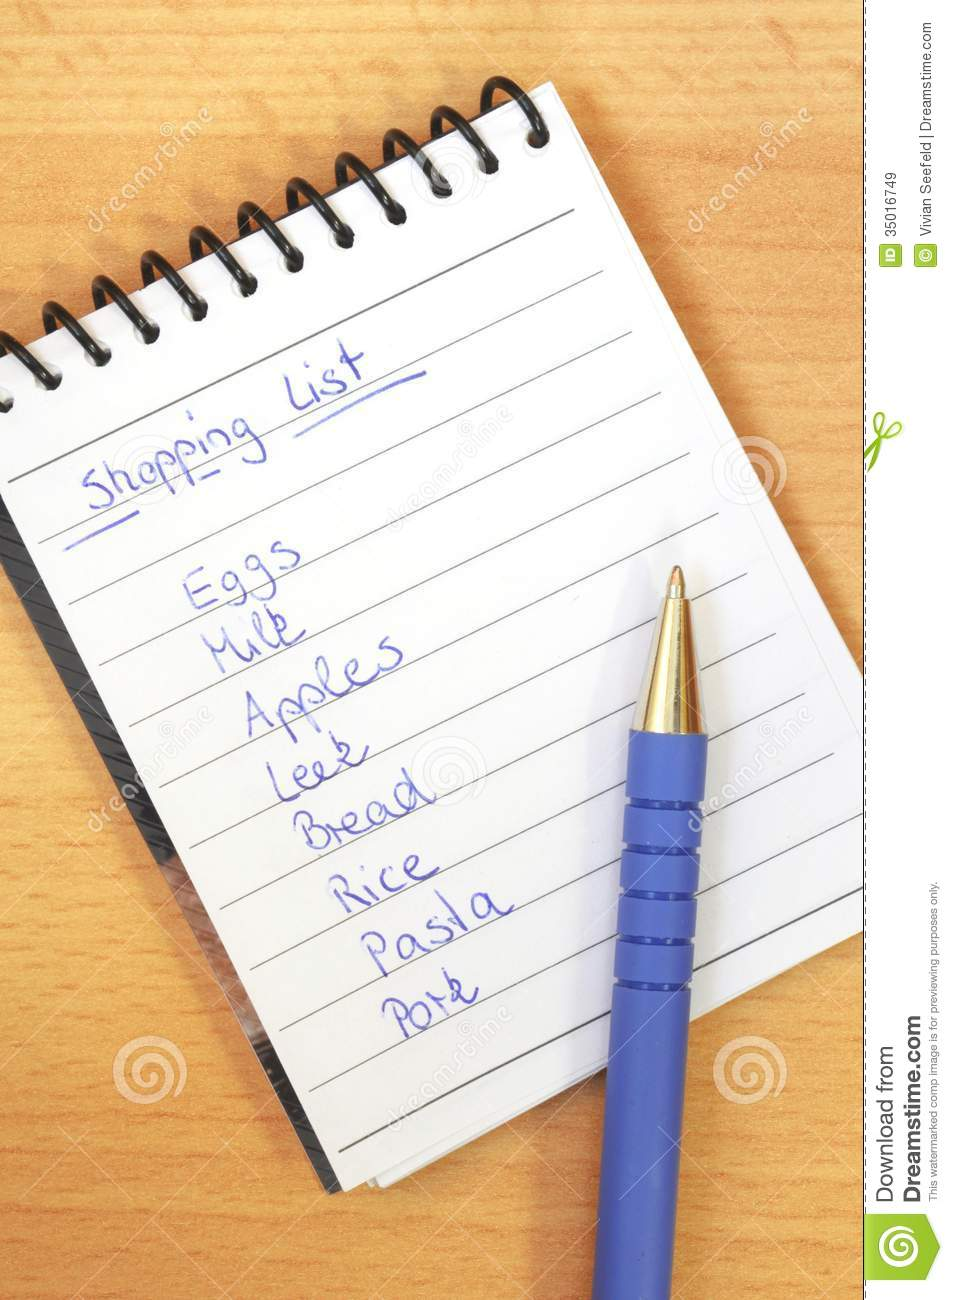 handwritten shopping list stock image. image of buying - 35016749